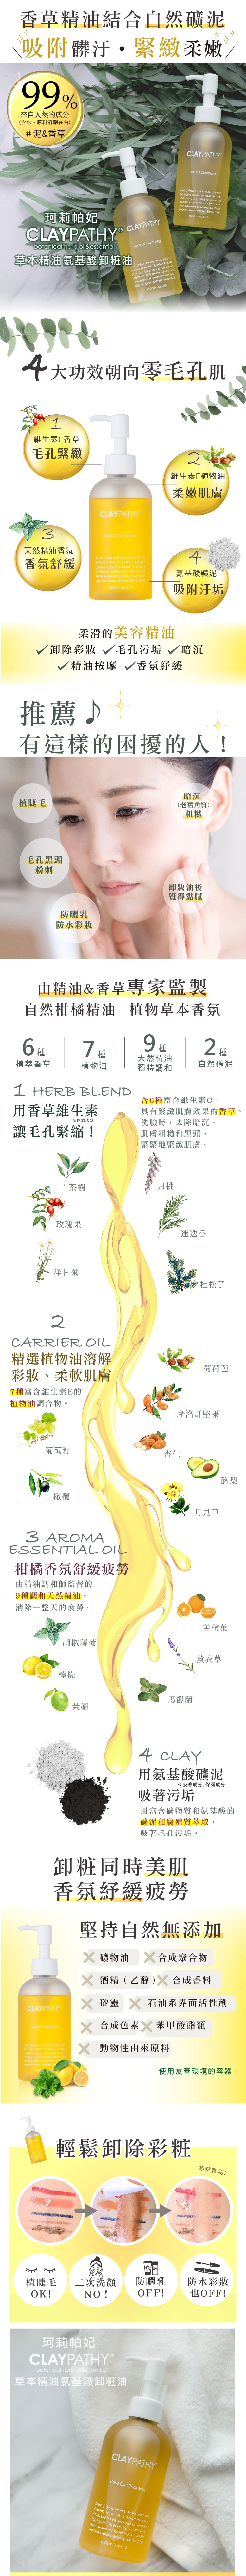 Herb Oil Cleansing - Features